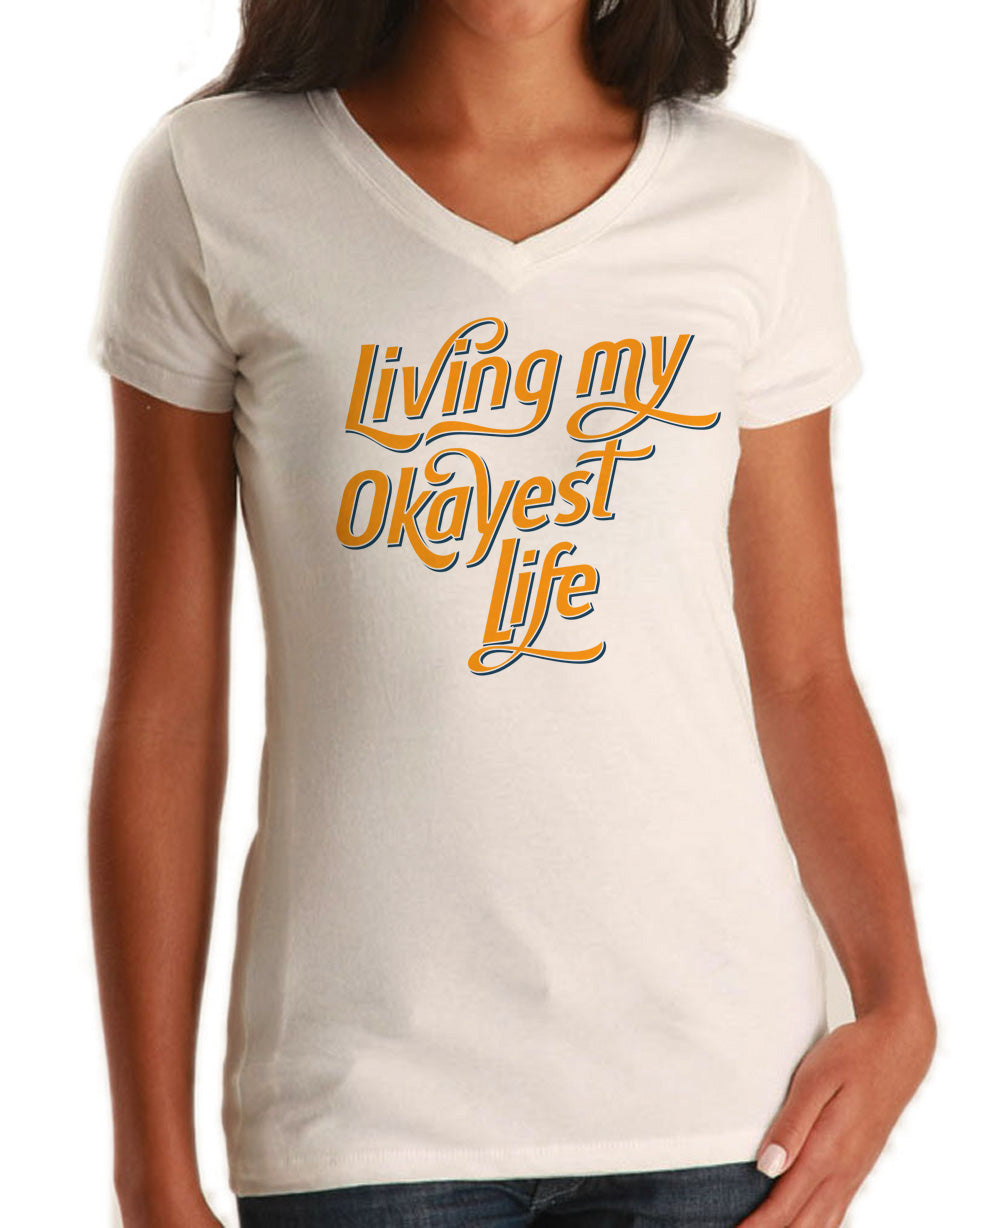 Women's Living My Okayest Life Vneck T-Shirt